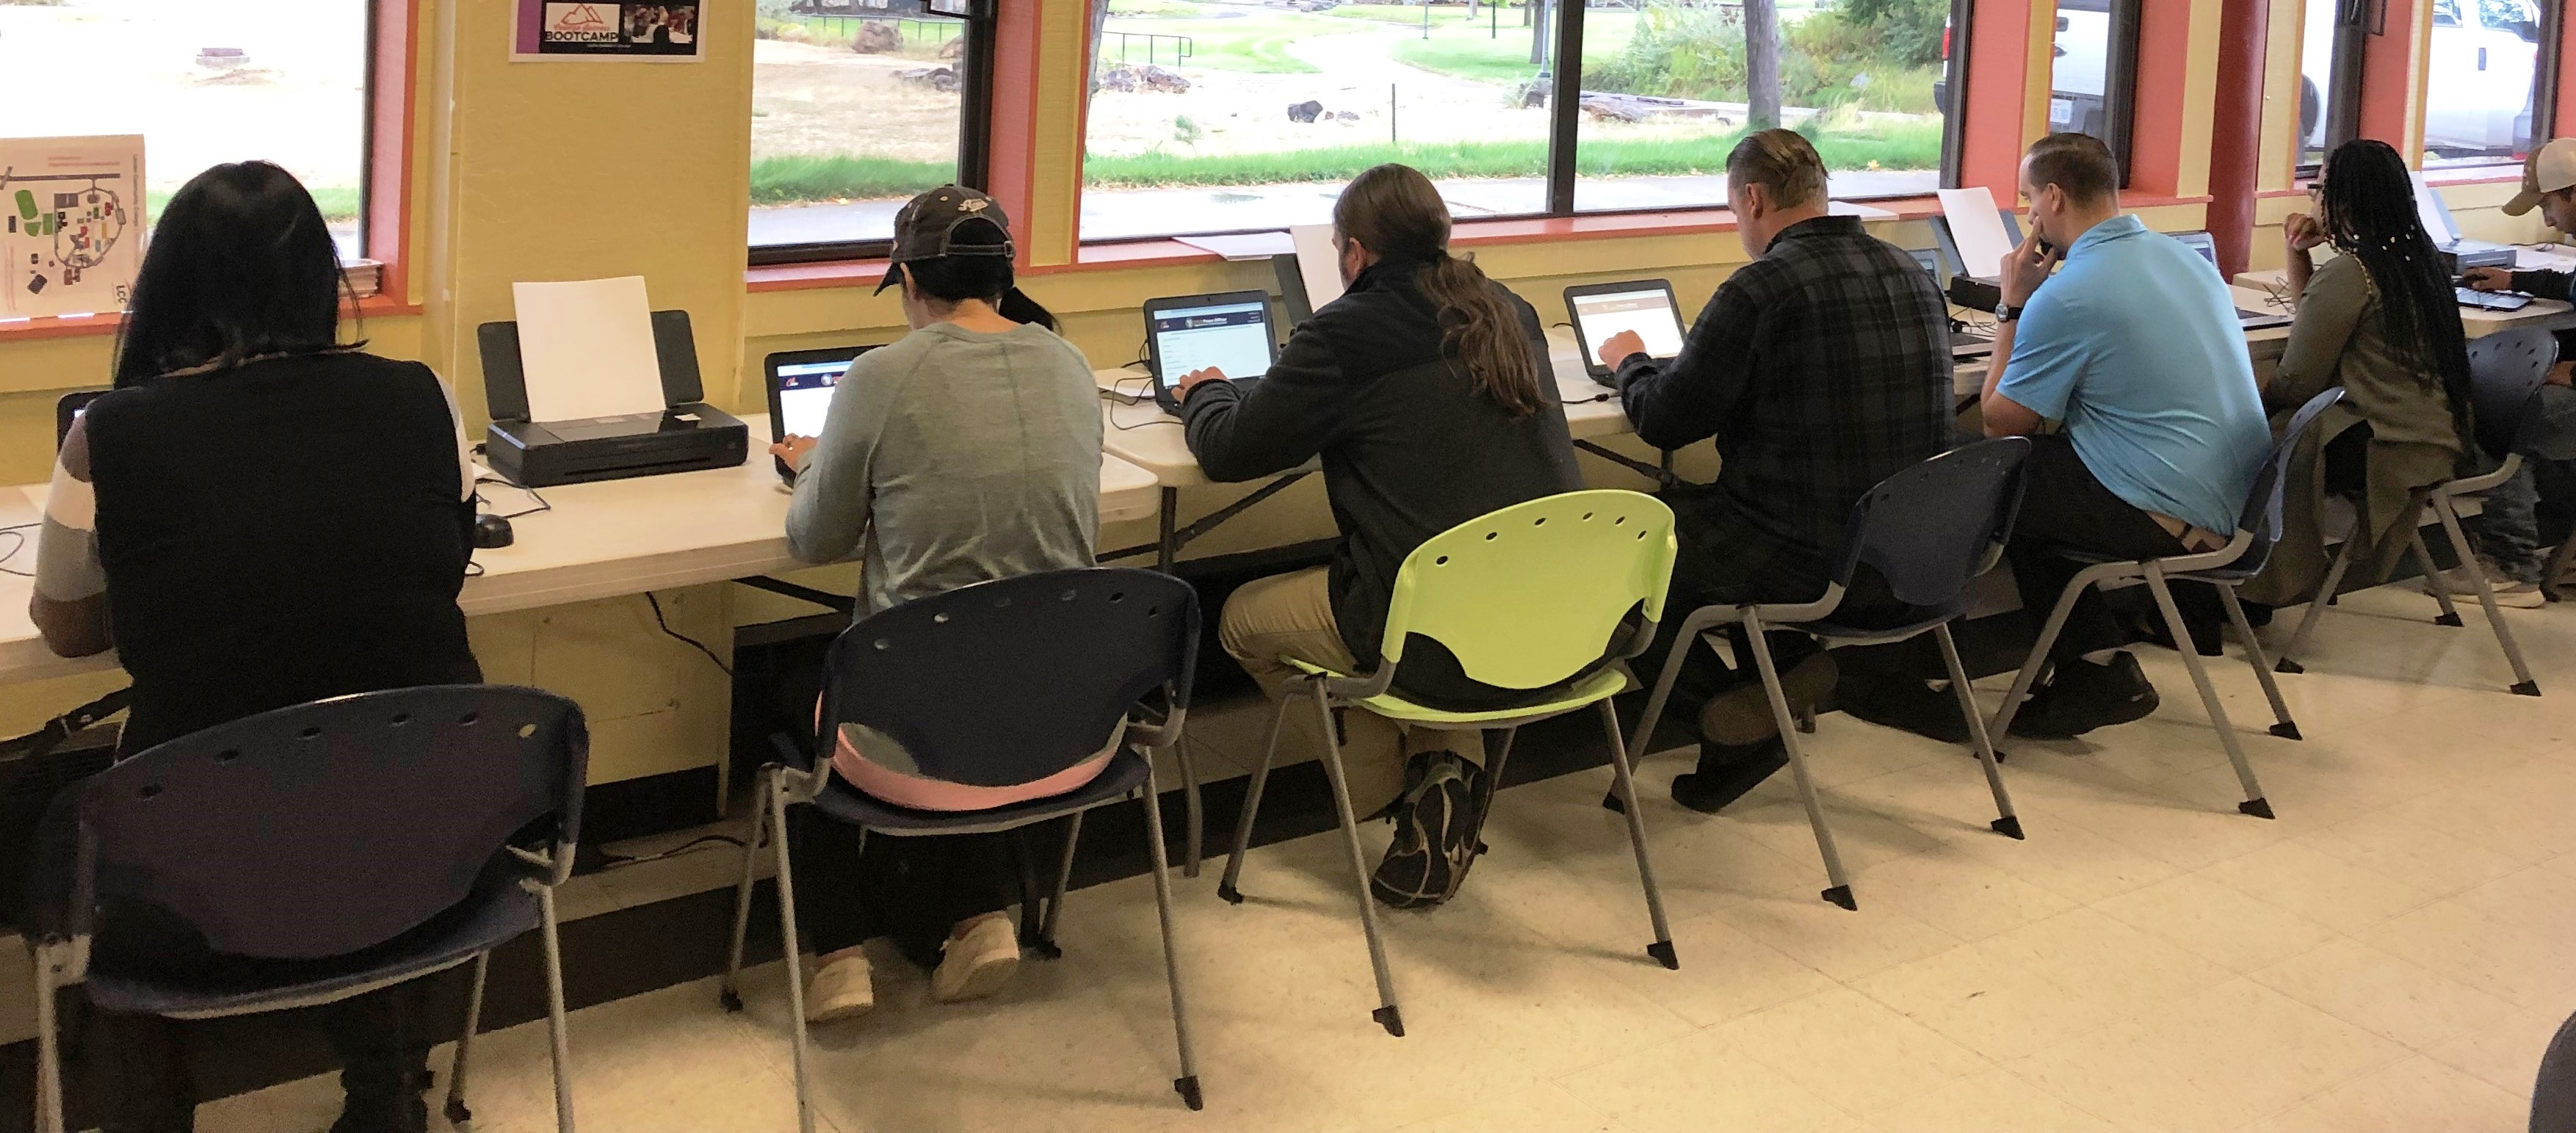 Six people sitting at computers with backs to camera